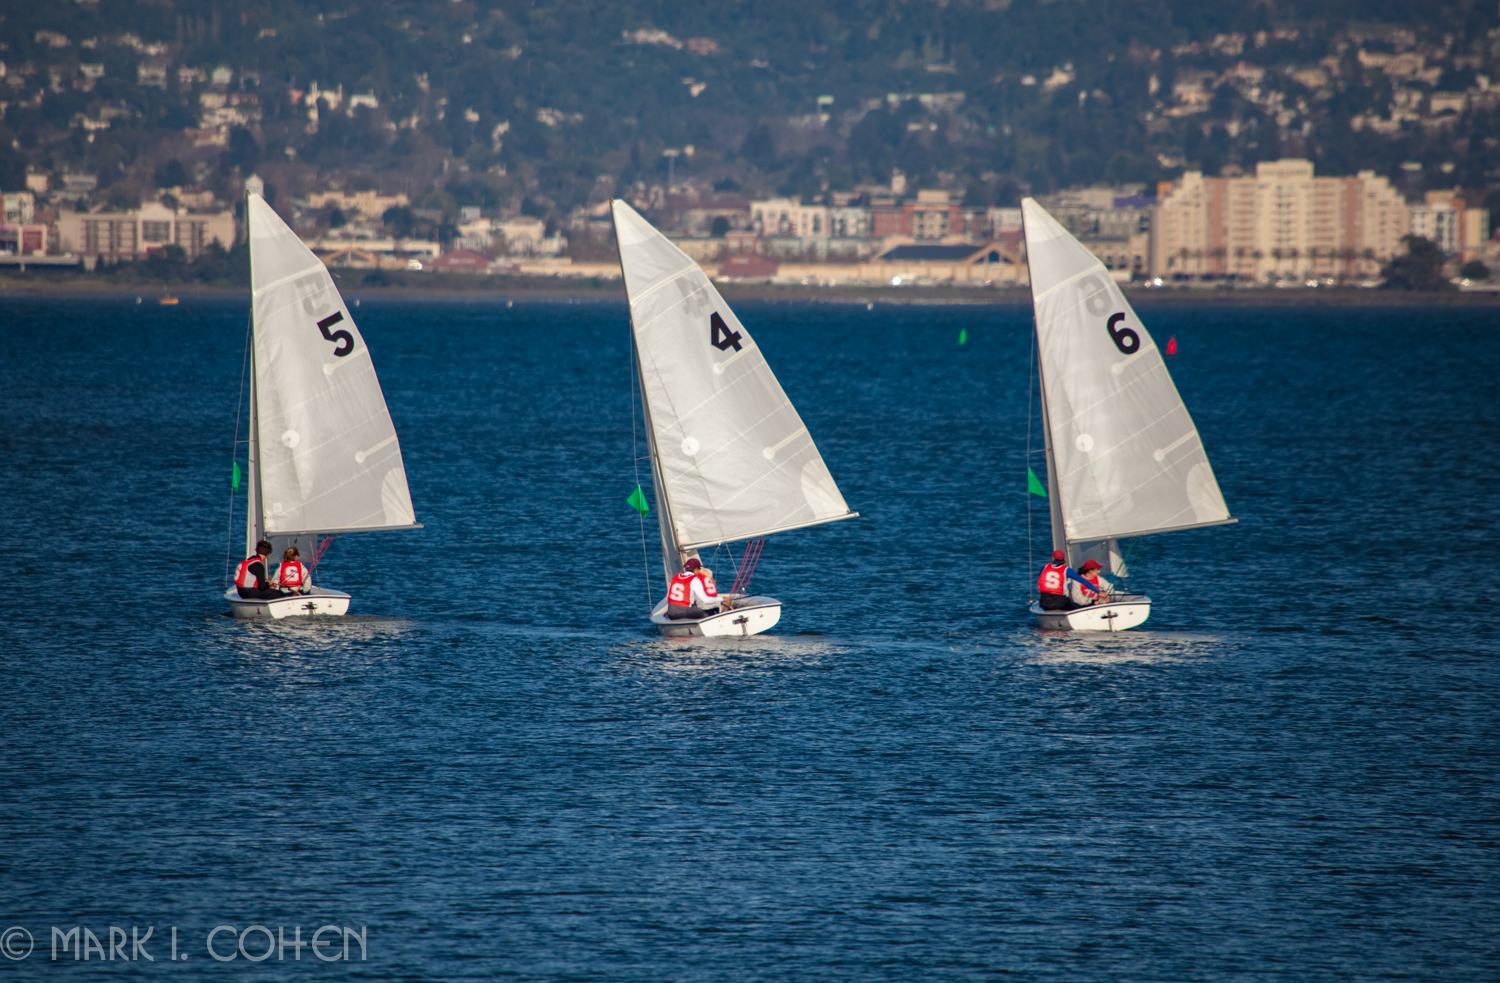 Boats under sail, San Francisco Bay 2012